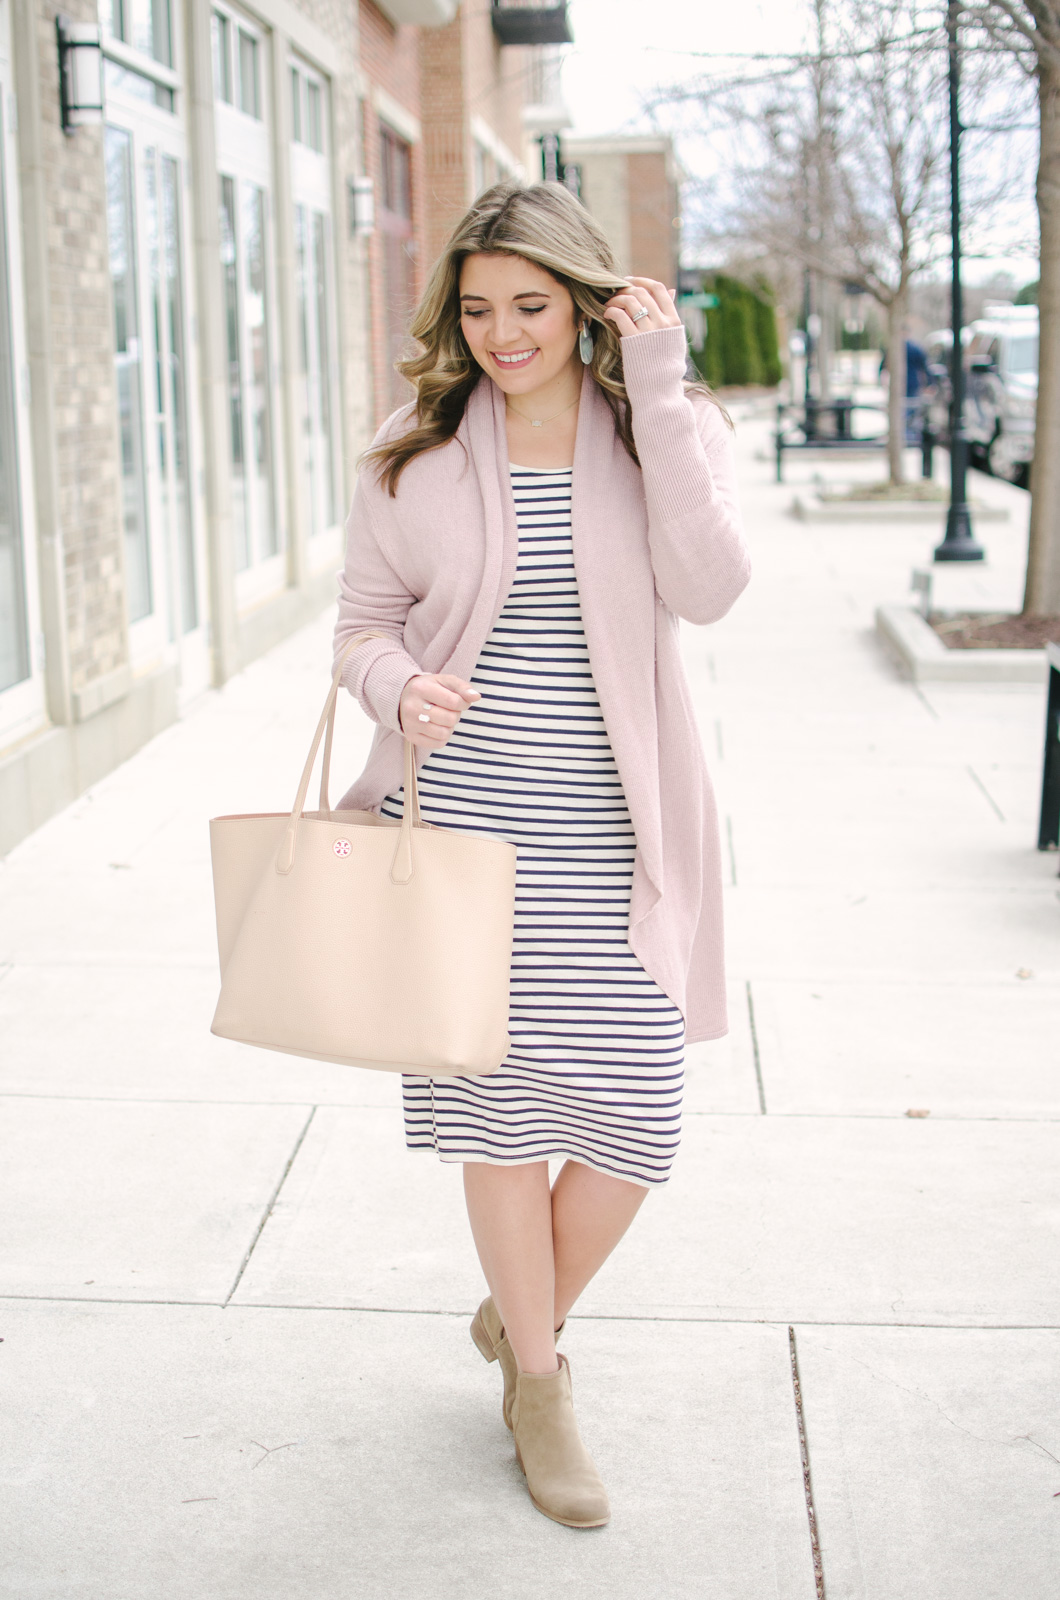 striped dress two ways - two ways to wear a striped dress for Spring   Shop this look and see the other striped dress outfit at bylaurenm.com!